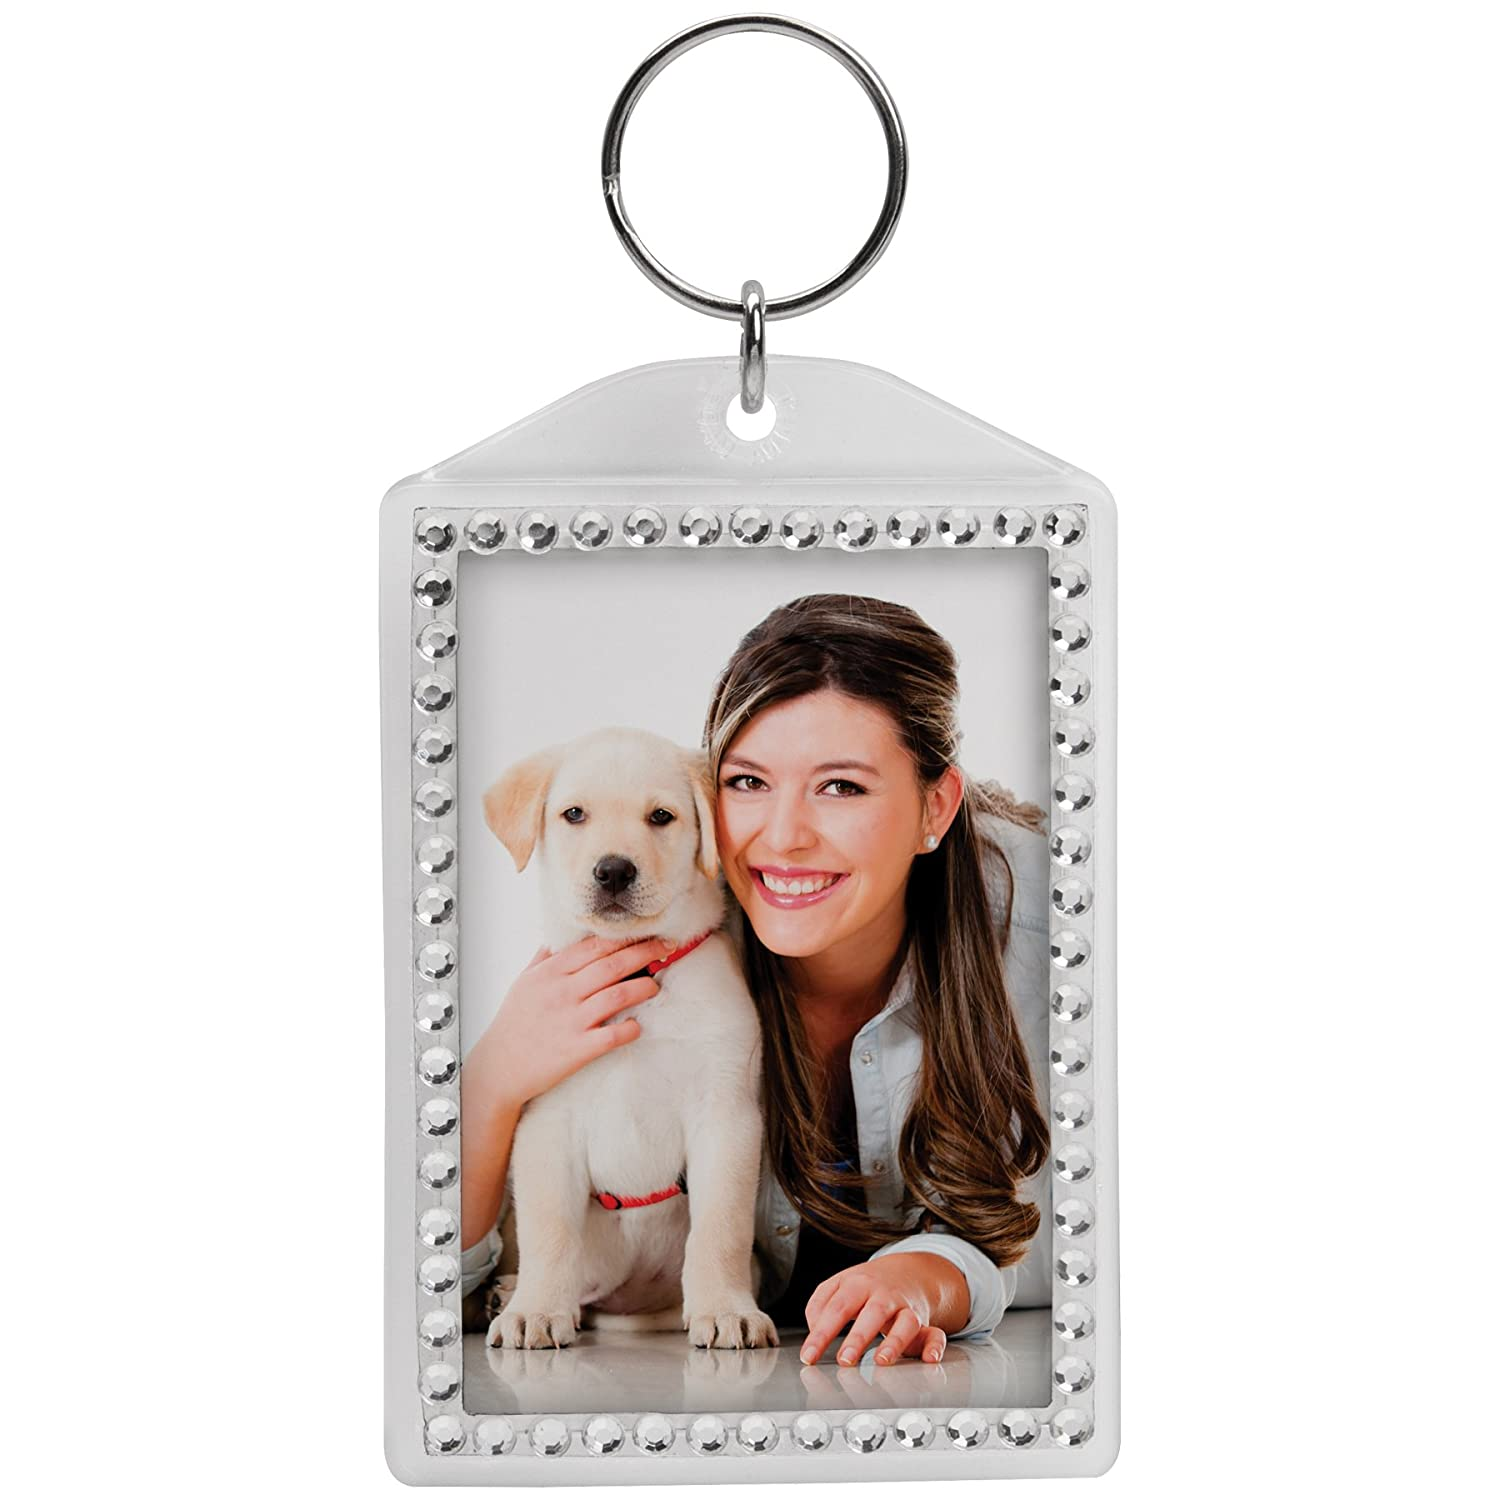 Rhinestone Acrylic Photo Snap-In Keychain (1) Neil Enterprises Inc.